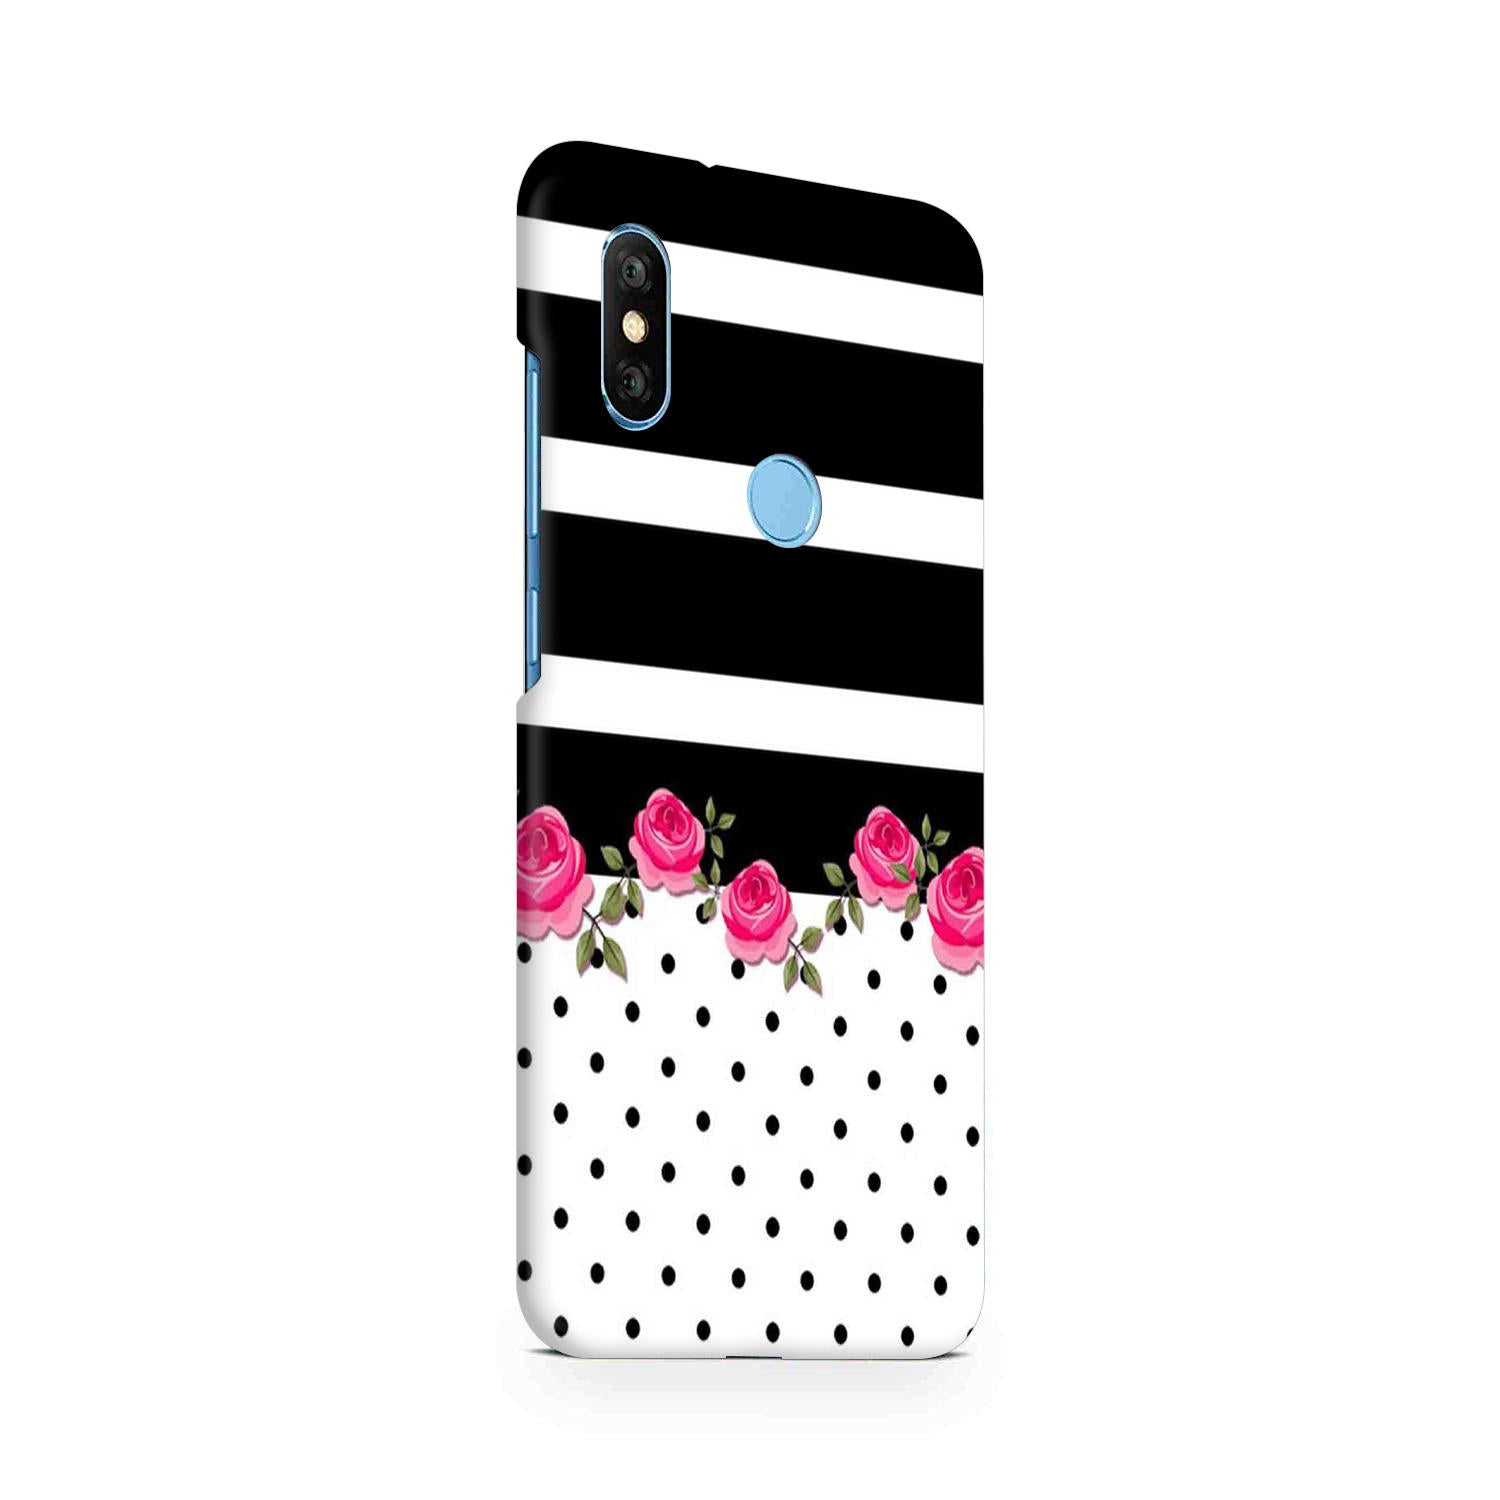 Rose Polka Stripes RedMi Note 6 Pro Mobile Cover Case - MADANYU